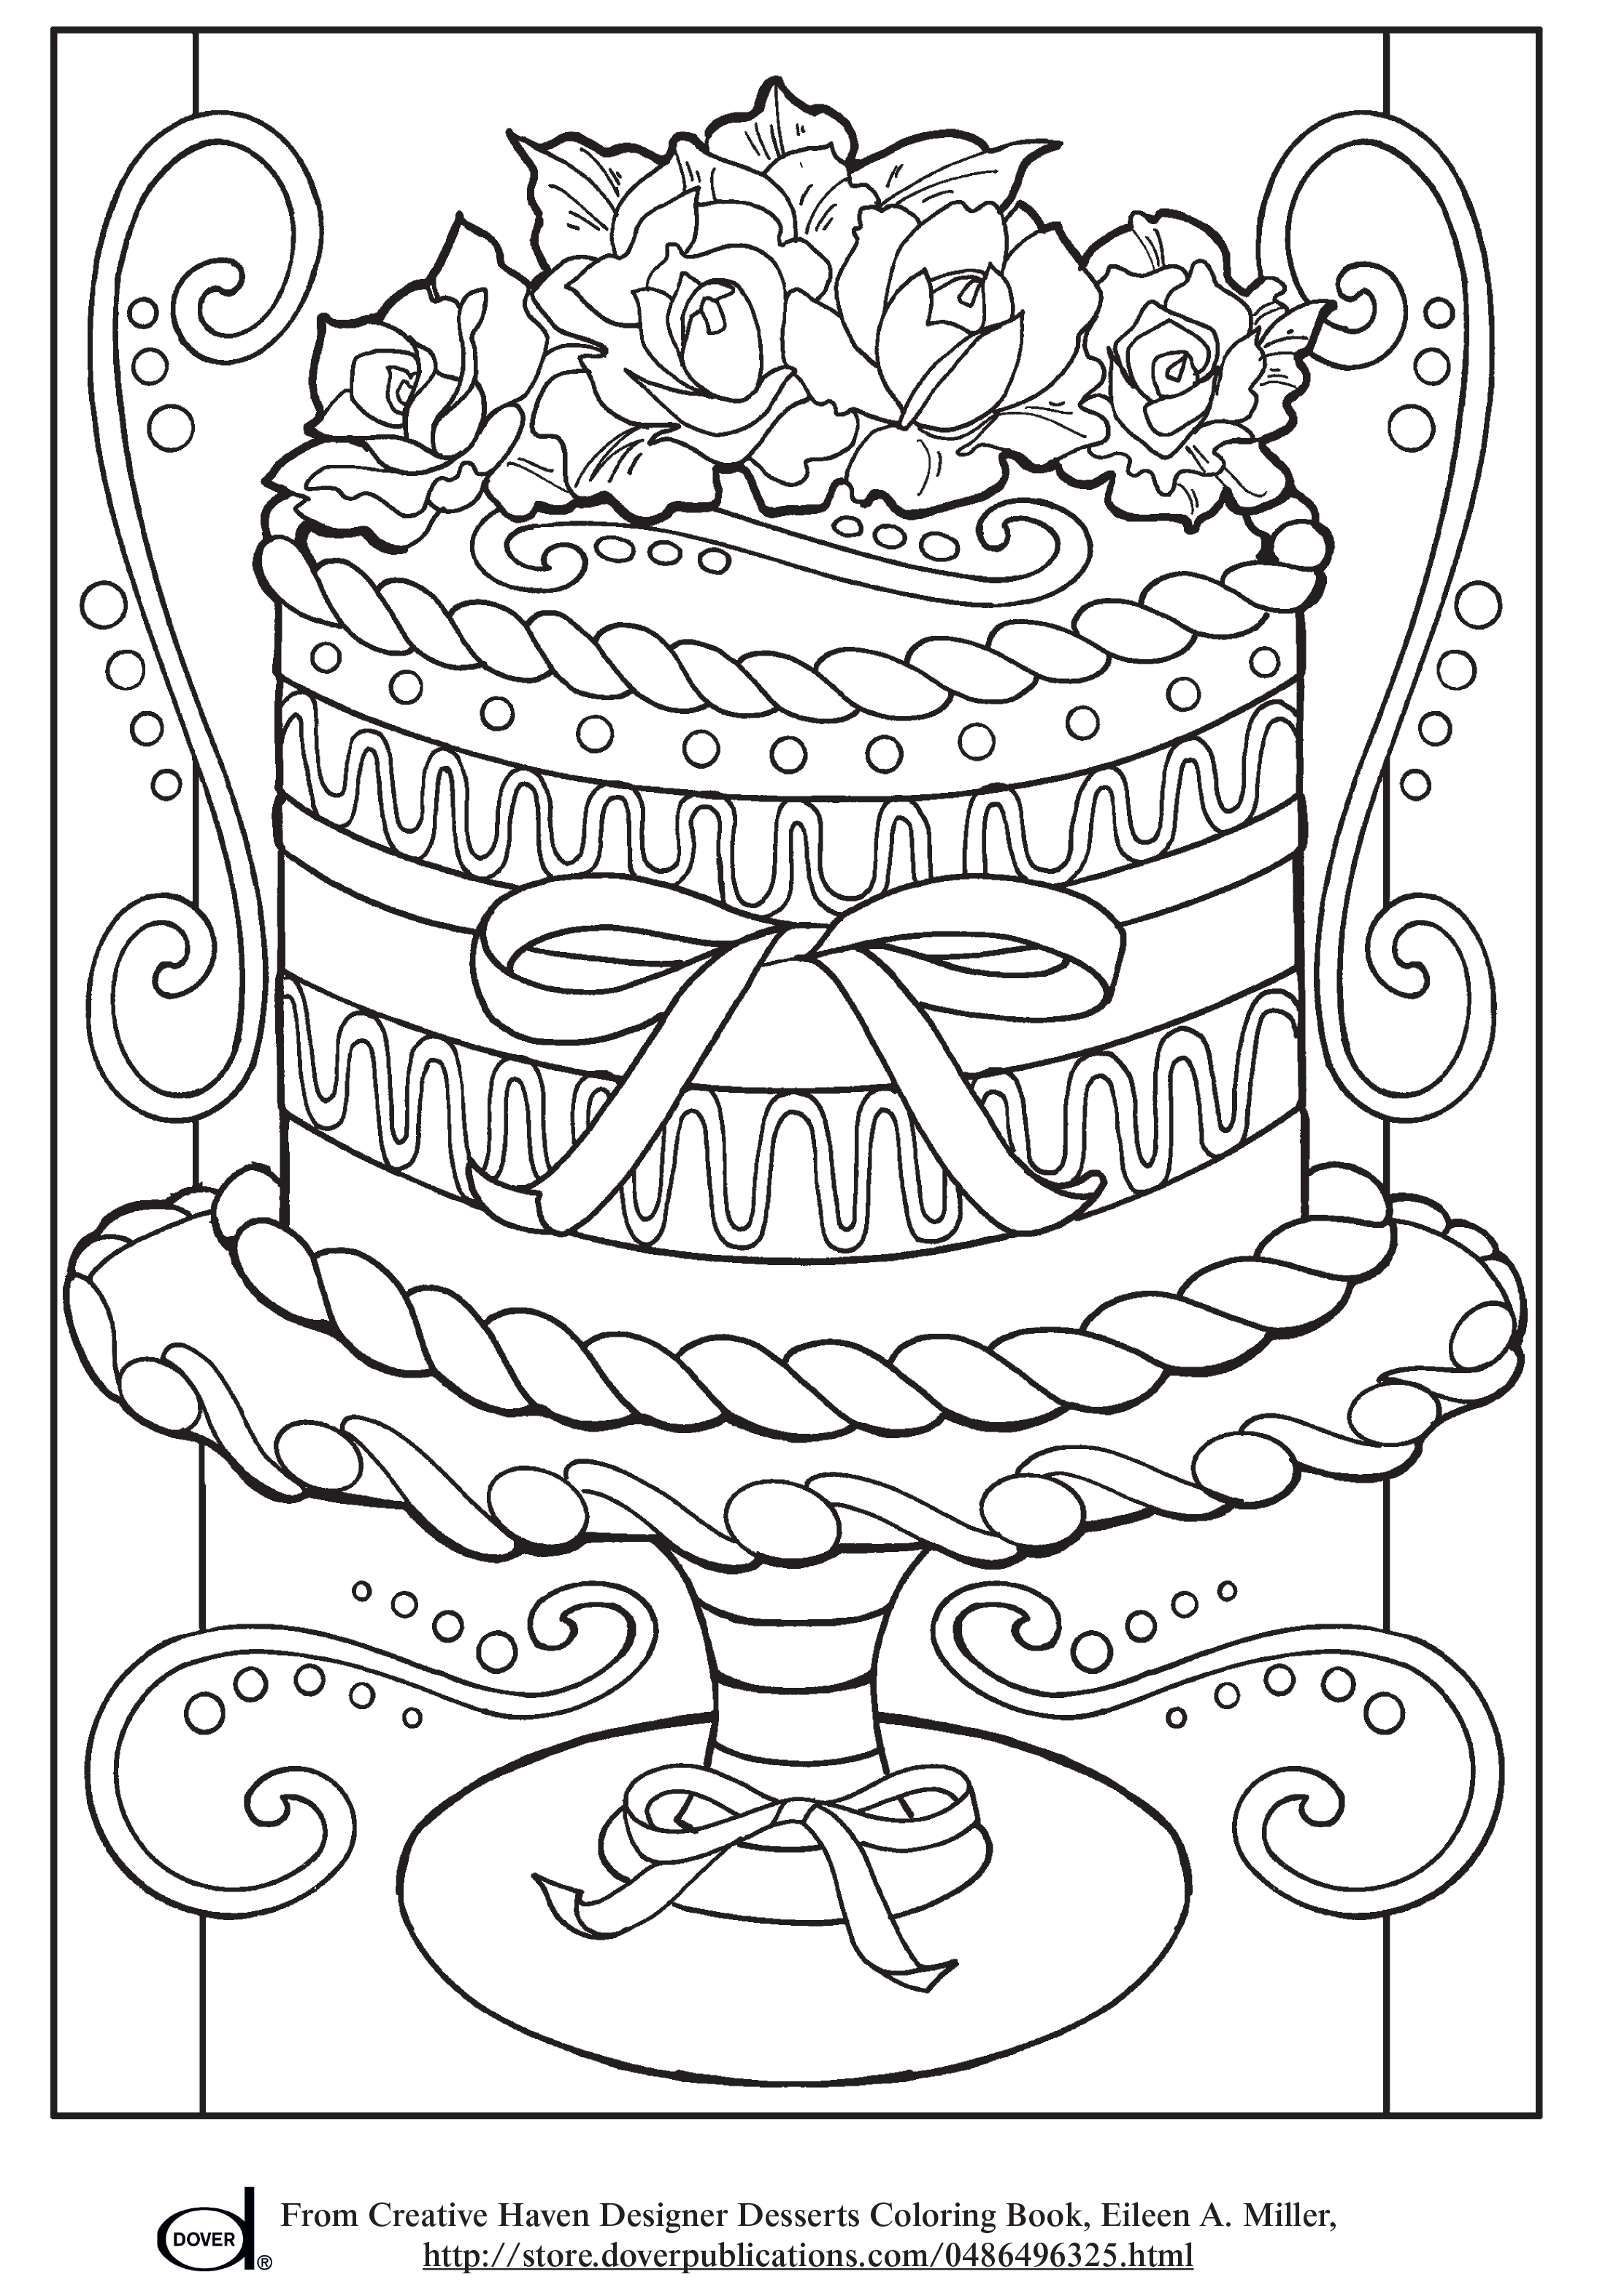 Free Printable Adult Coloring Pages - Wedding Cake | Colouring Book ...